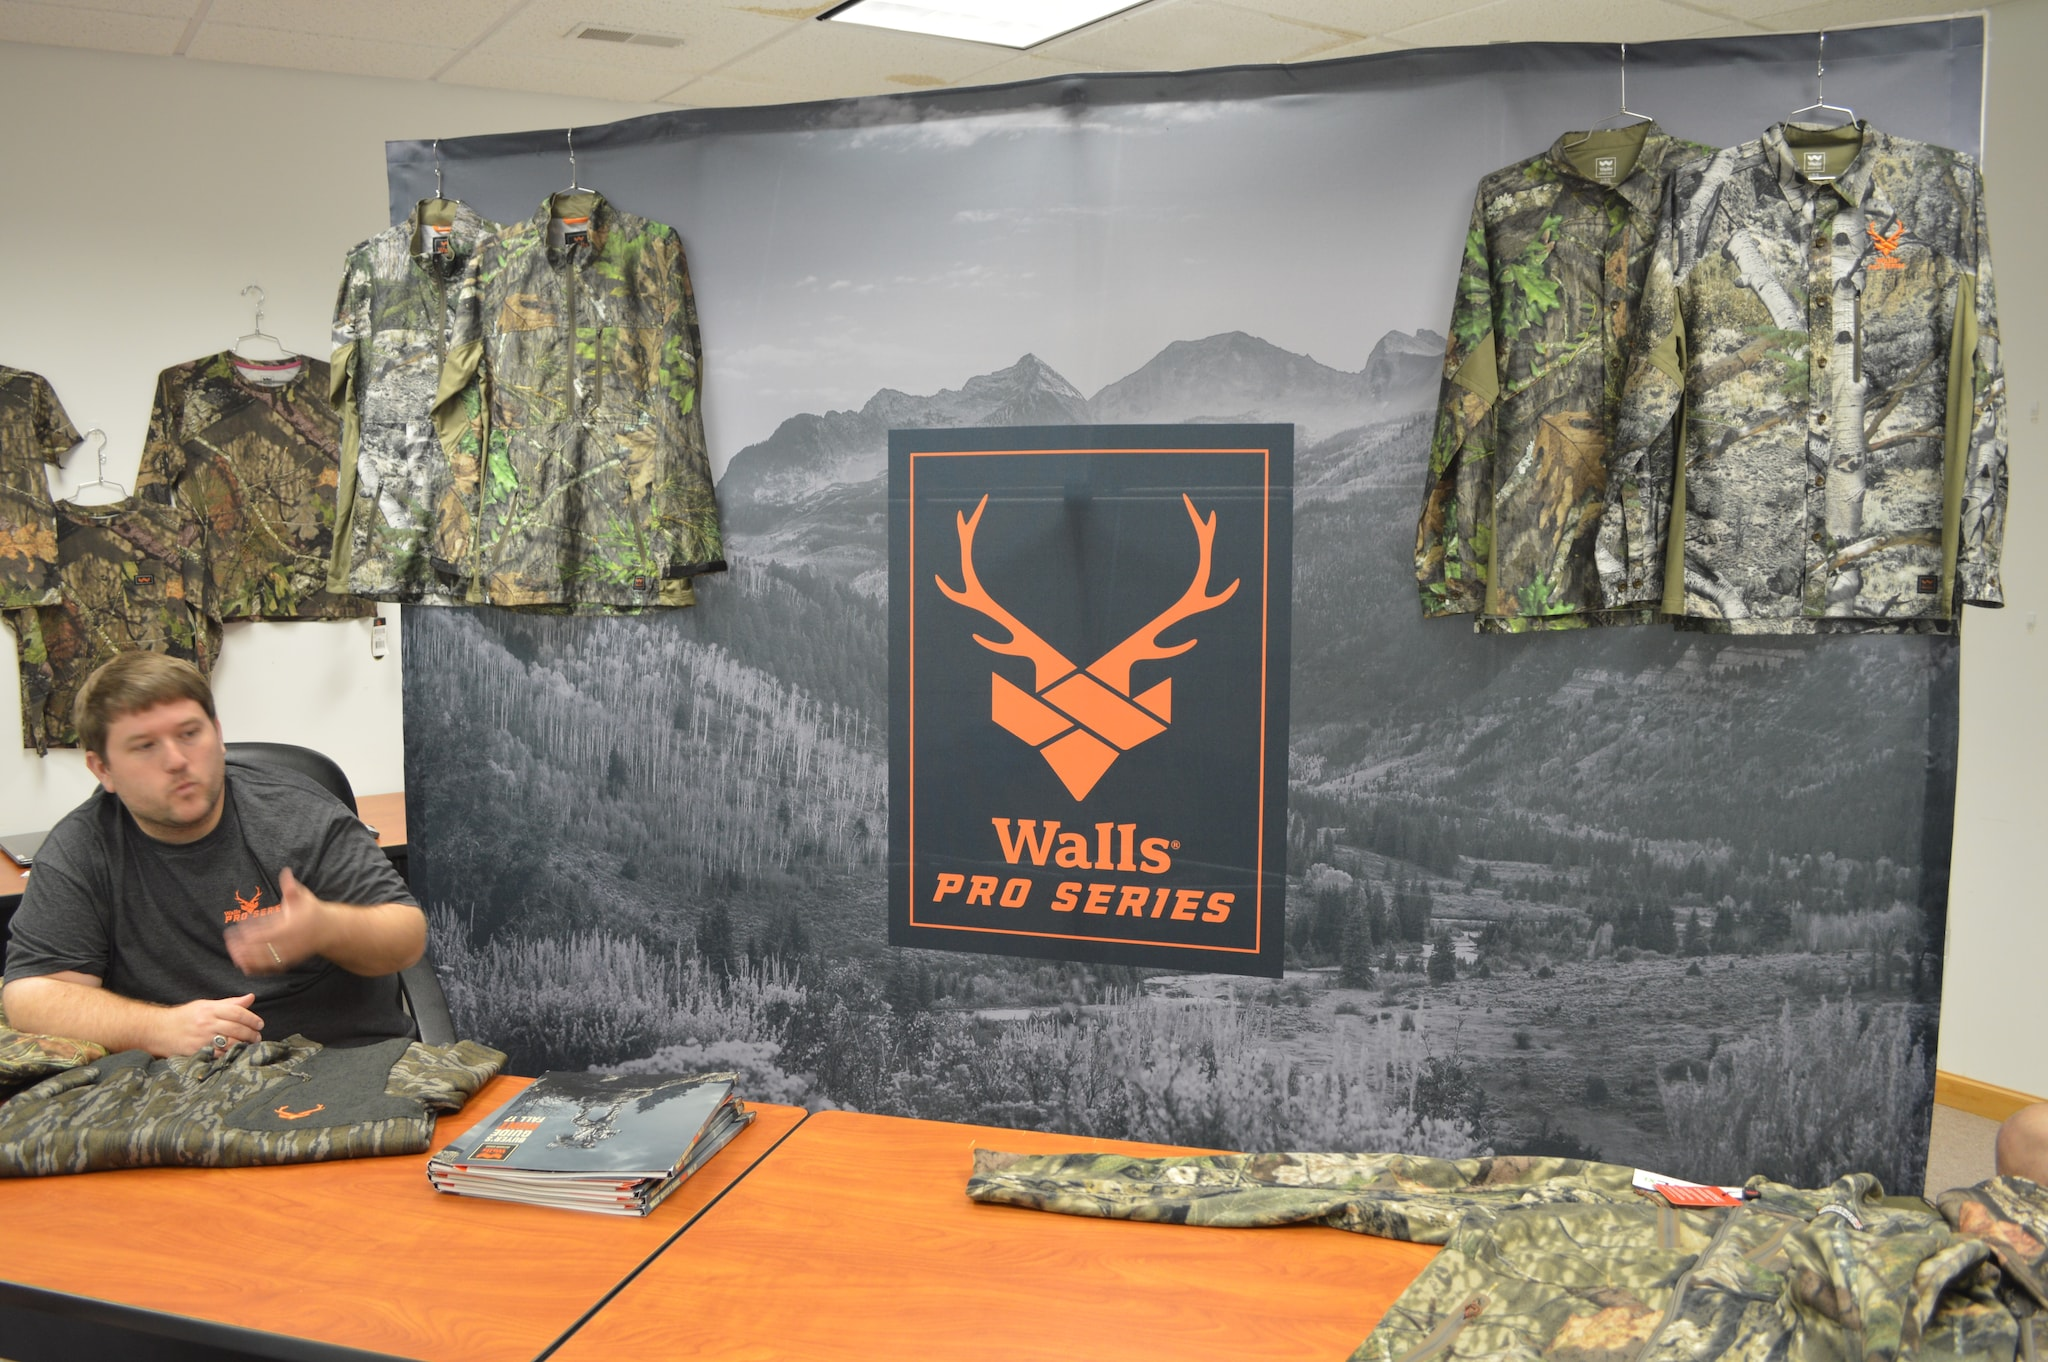 The company once branded as 10X hunting apparel, is now branded as Walls. They offer a wide variety of hunting garments, with something for every season, and women's and childrens lines as well. (Photo: Kristin Alberts)